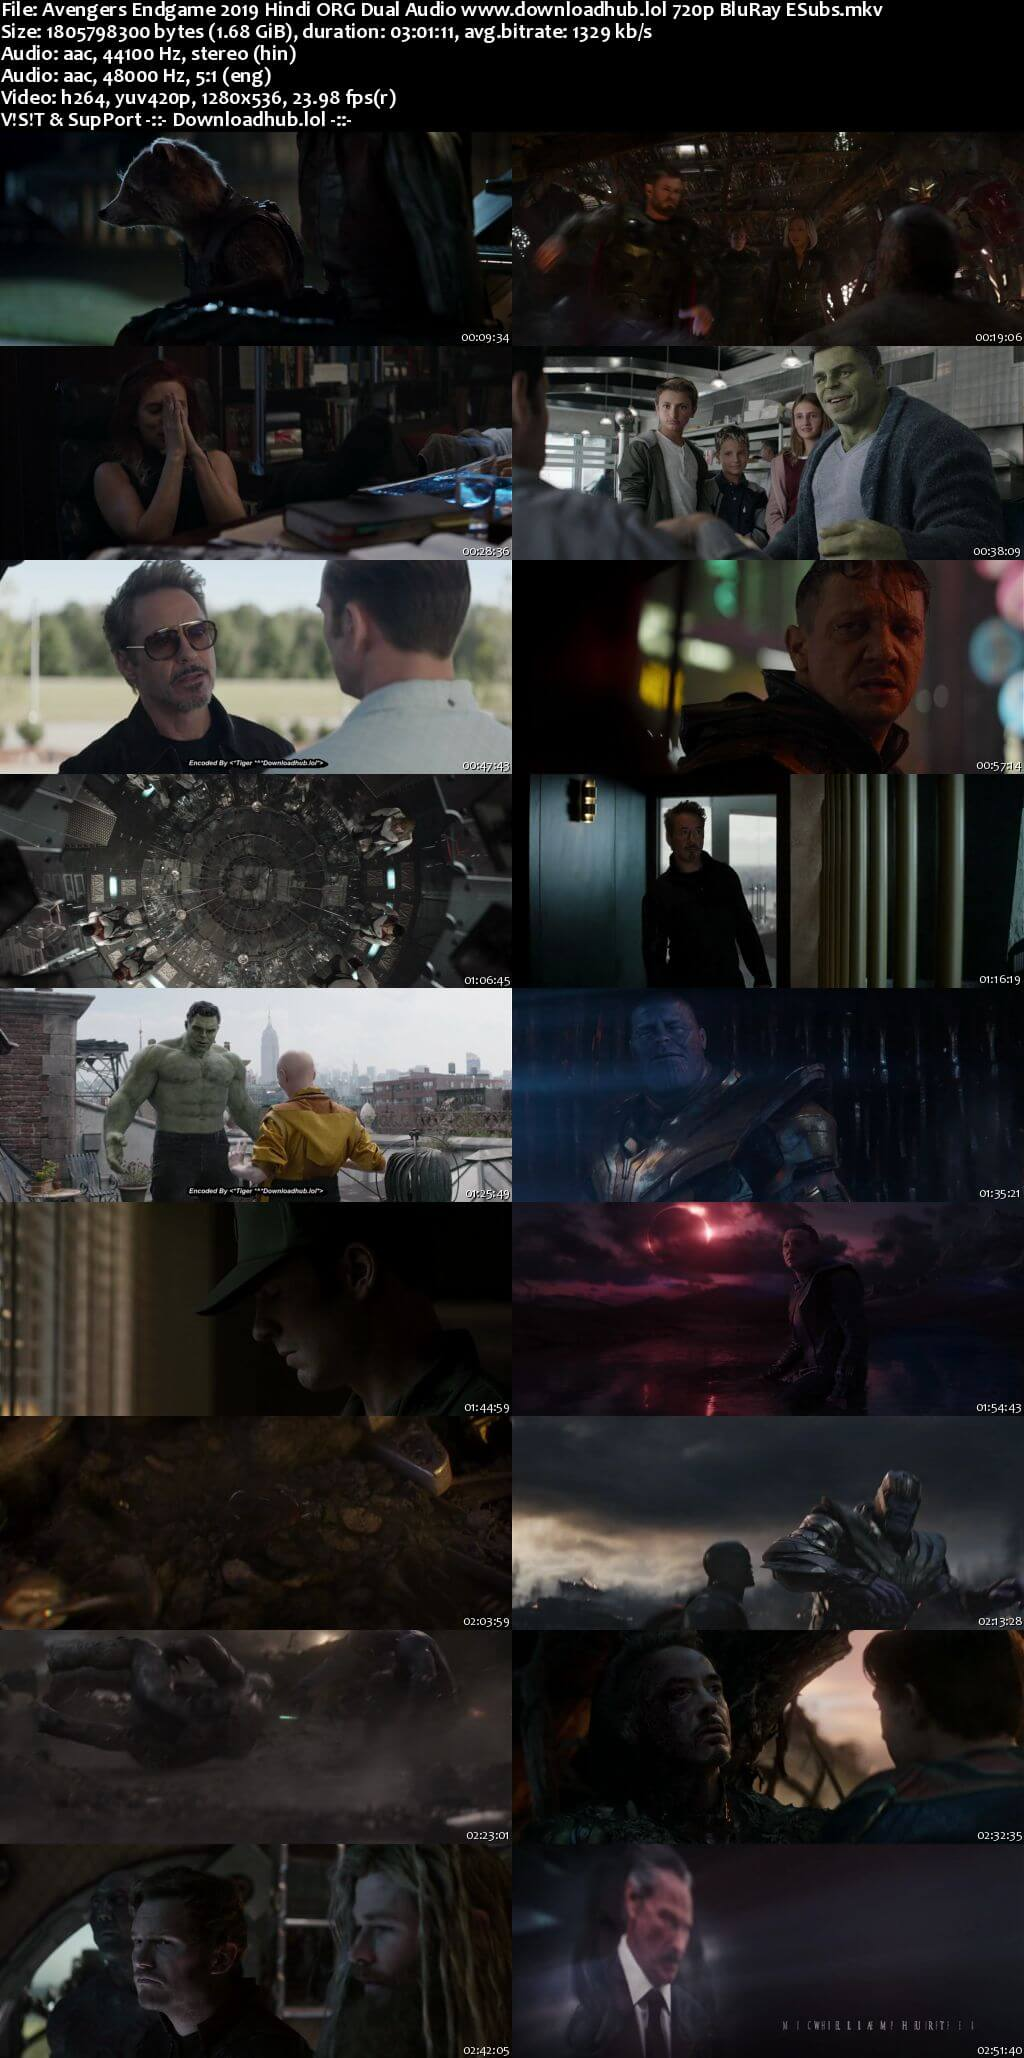 Avengers Endgame 2019 Hindi ORG Dual Audio 720p BluRay ESubs